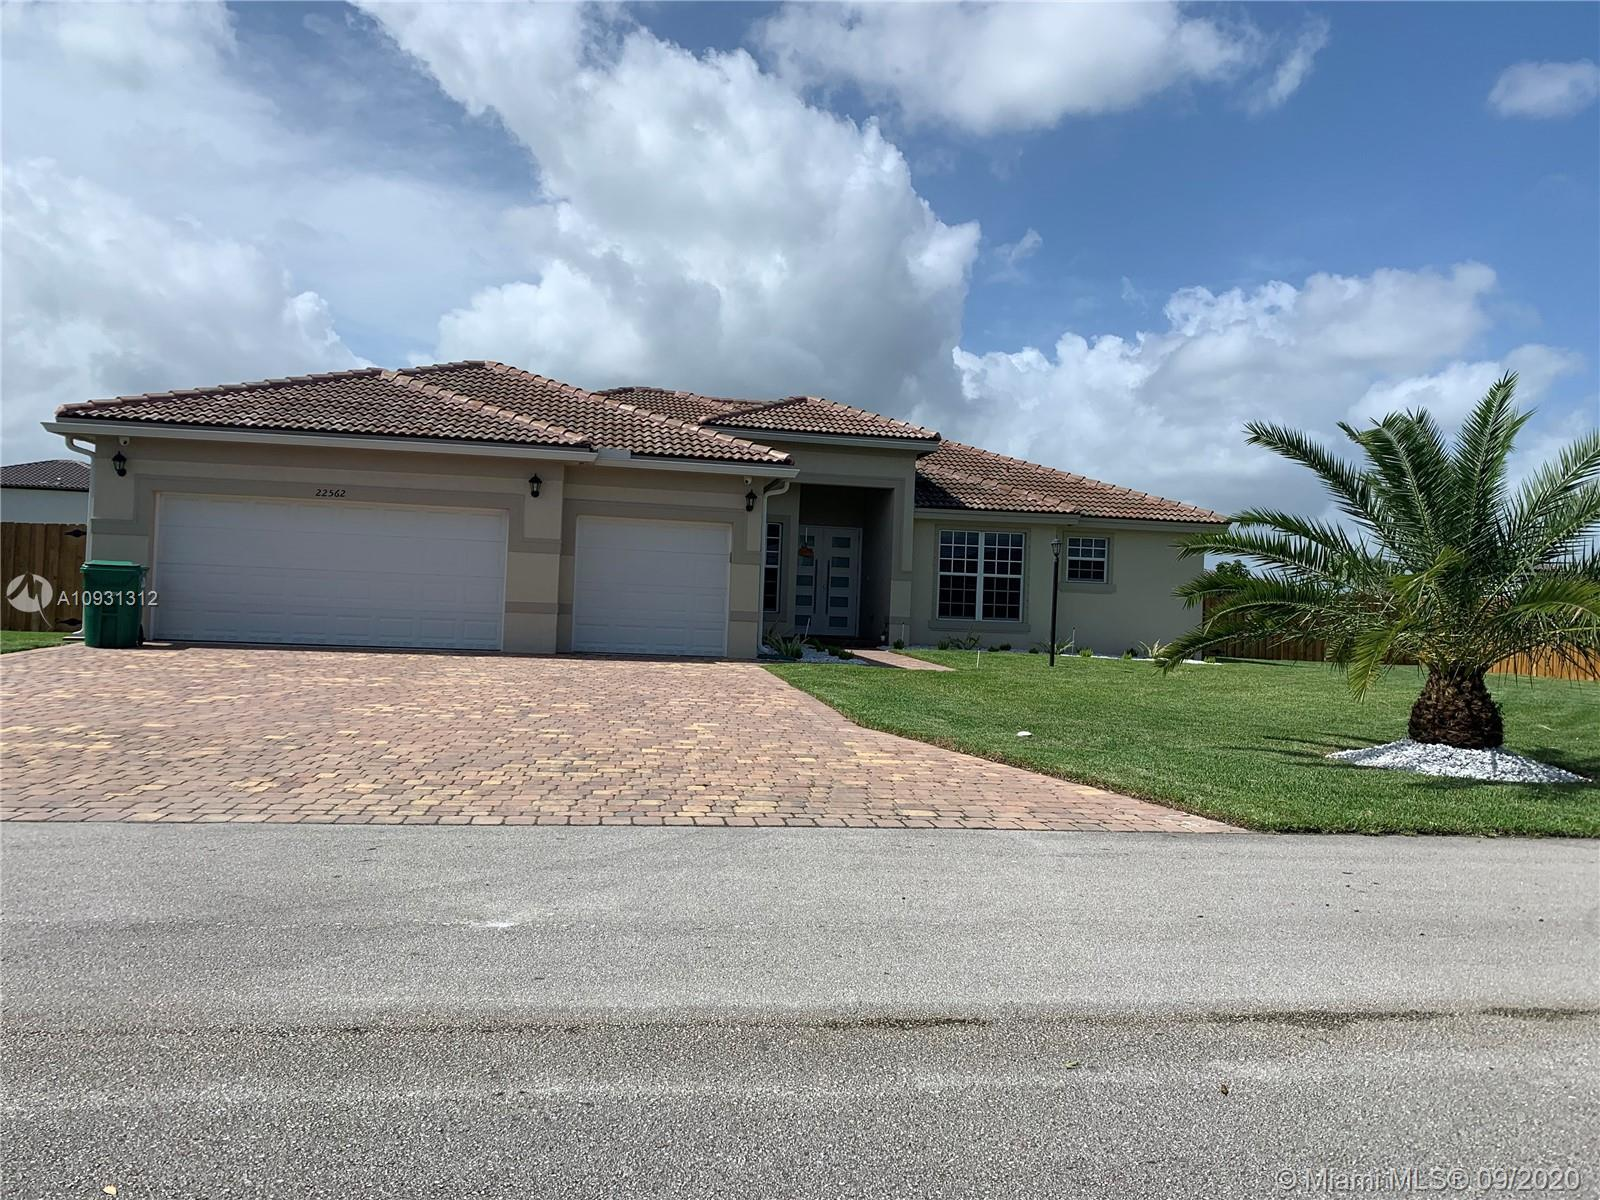 Available for sale 4-Bed & 3-Bath Home built it 2016. Property is over 4,000 square feet and sits on a 15,000 sq ft lot! This spacious home offers a large open floor plan w/ family room that opens to beautiful kitchen equipped w/ pantry, island, and another separate dining area facing the covered patio. Fenced in large backyard! Also featuring 3-car garage, master bedroom suite is equipped w/ his & her closets and vanities along w/ a soaking tub and stand-up shower. Property has state of art security system, 16 cameras, 3 central A/C's, sprinklers, you name it, it has it. Call today for your private showing.